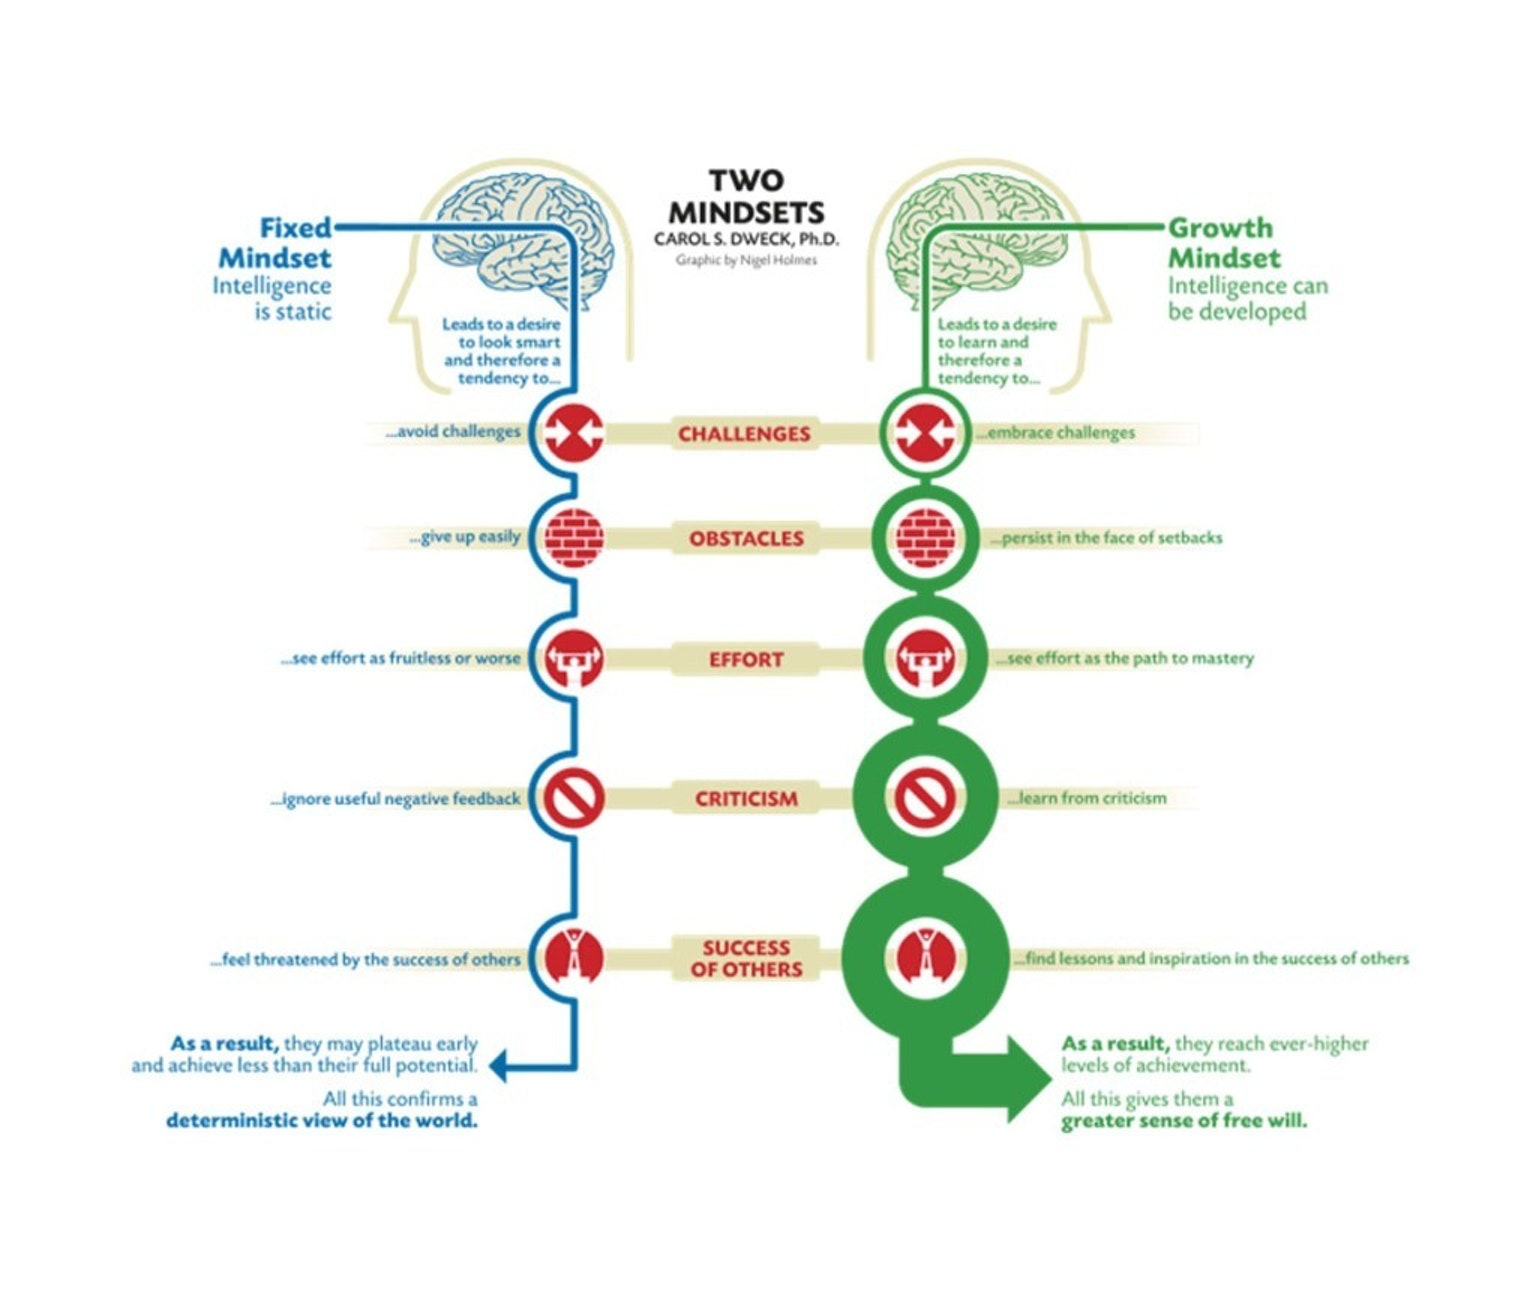 A look at the fixed versus growth mindset, as defined by Dweck.